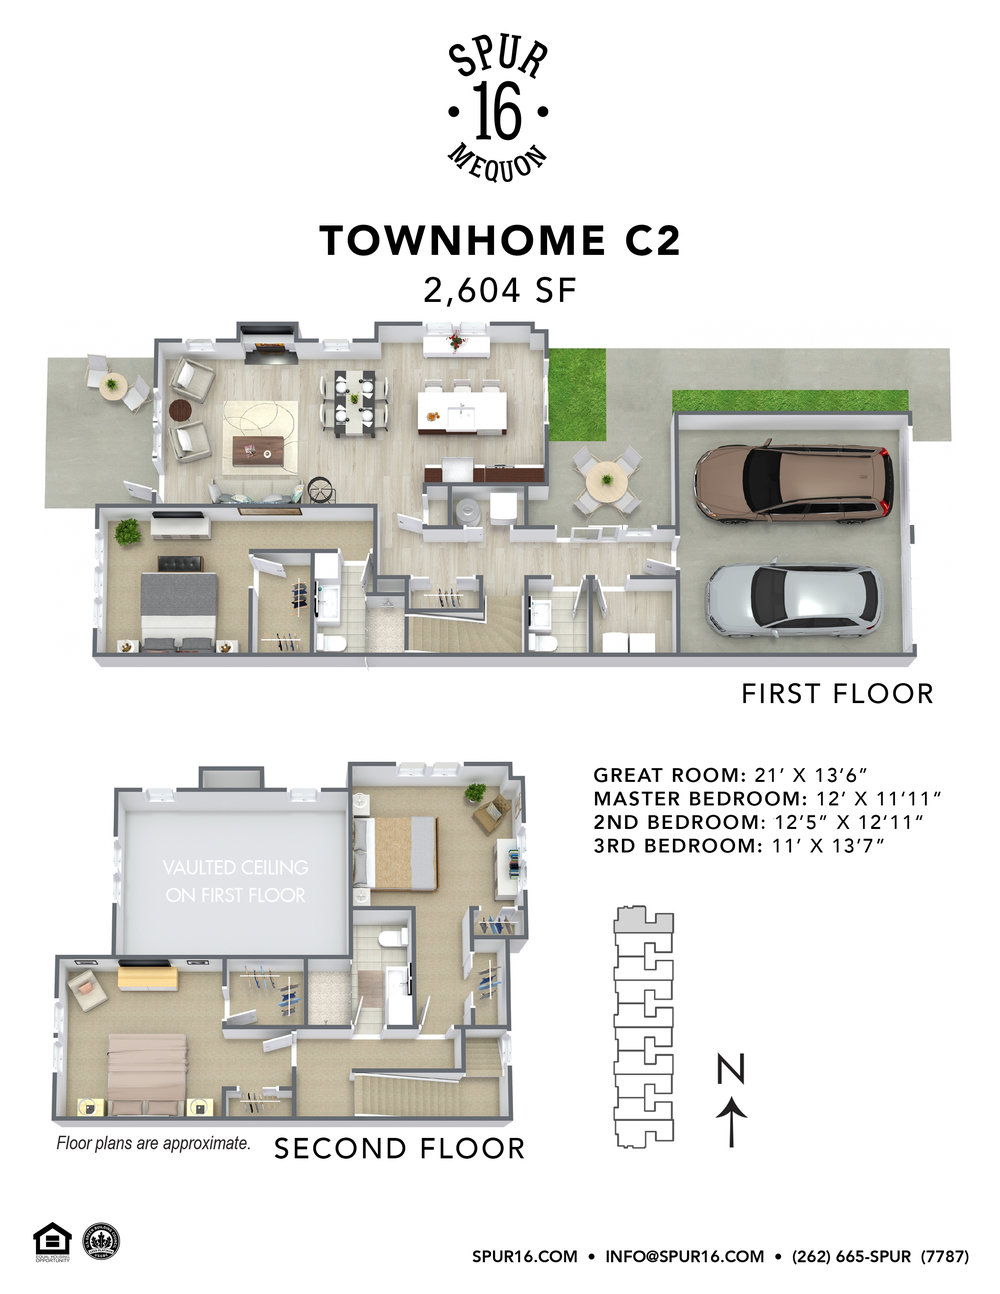 3D Floor Plan - Townhome C2.jpg